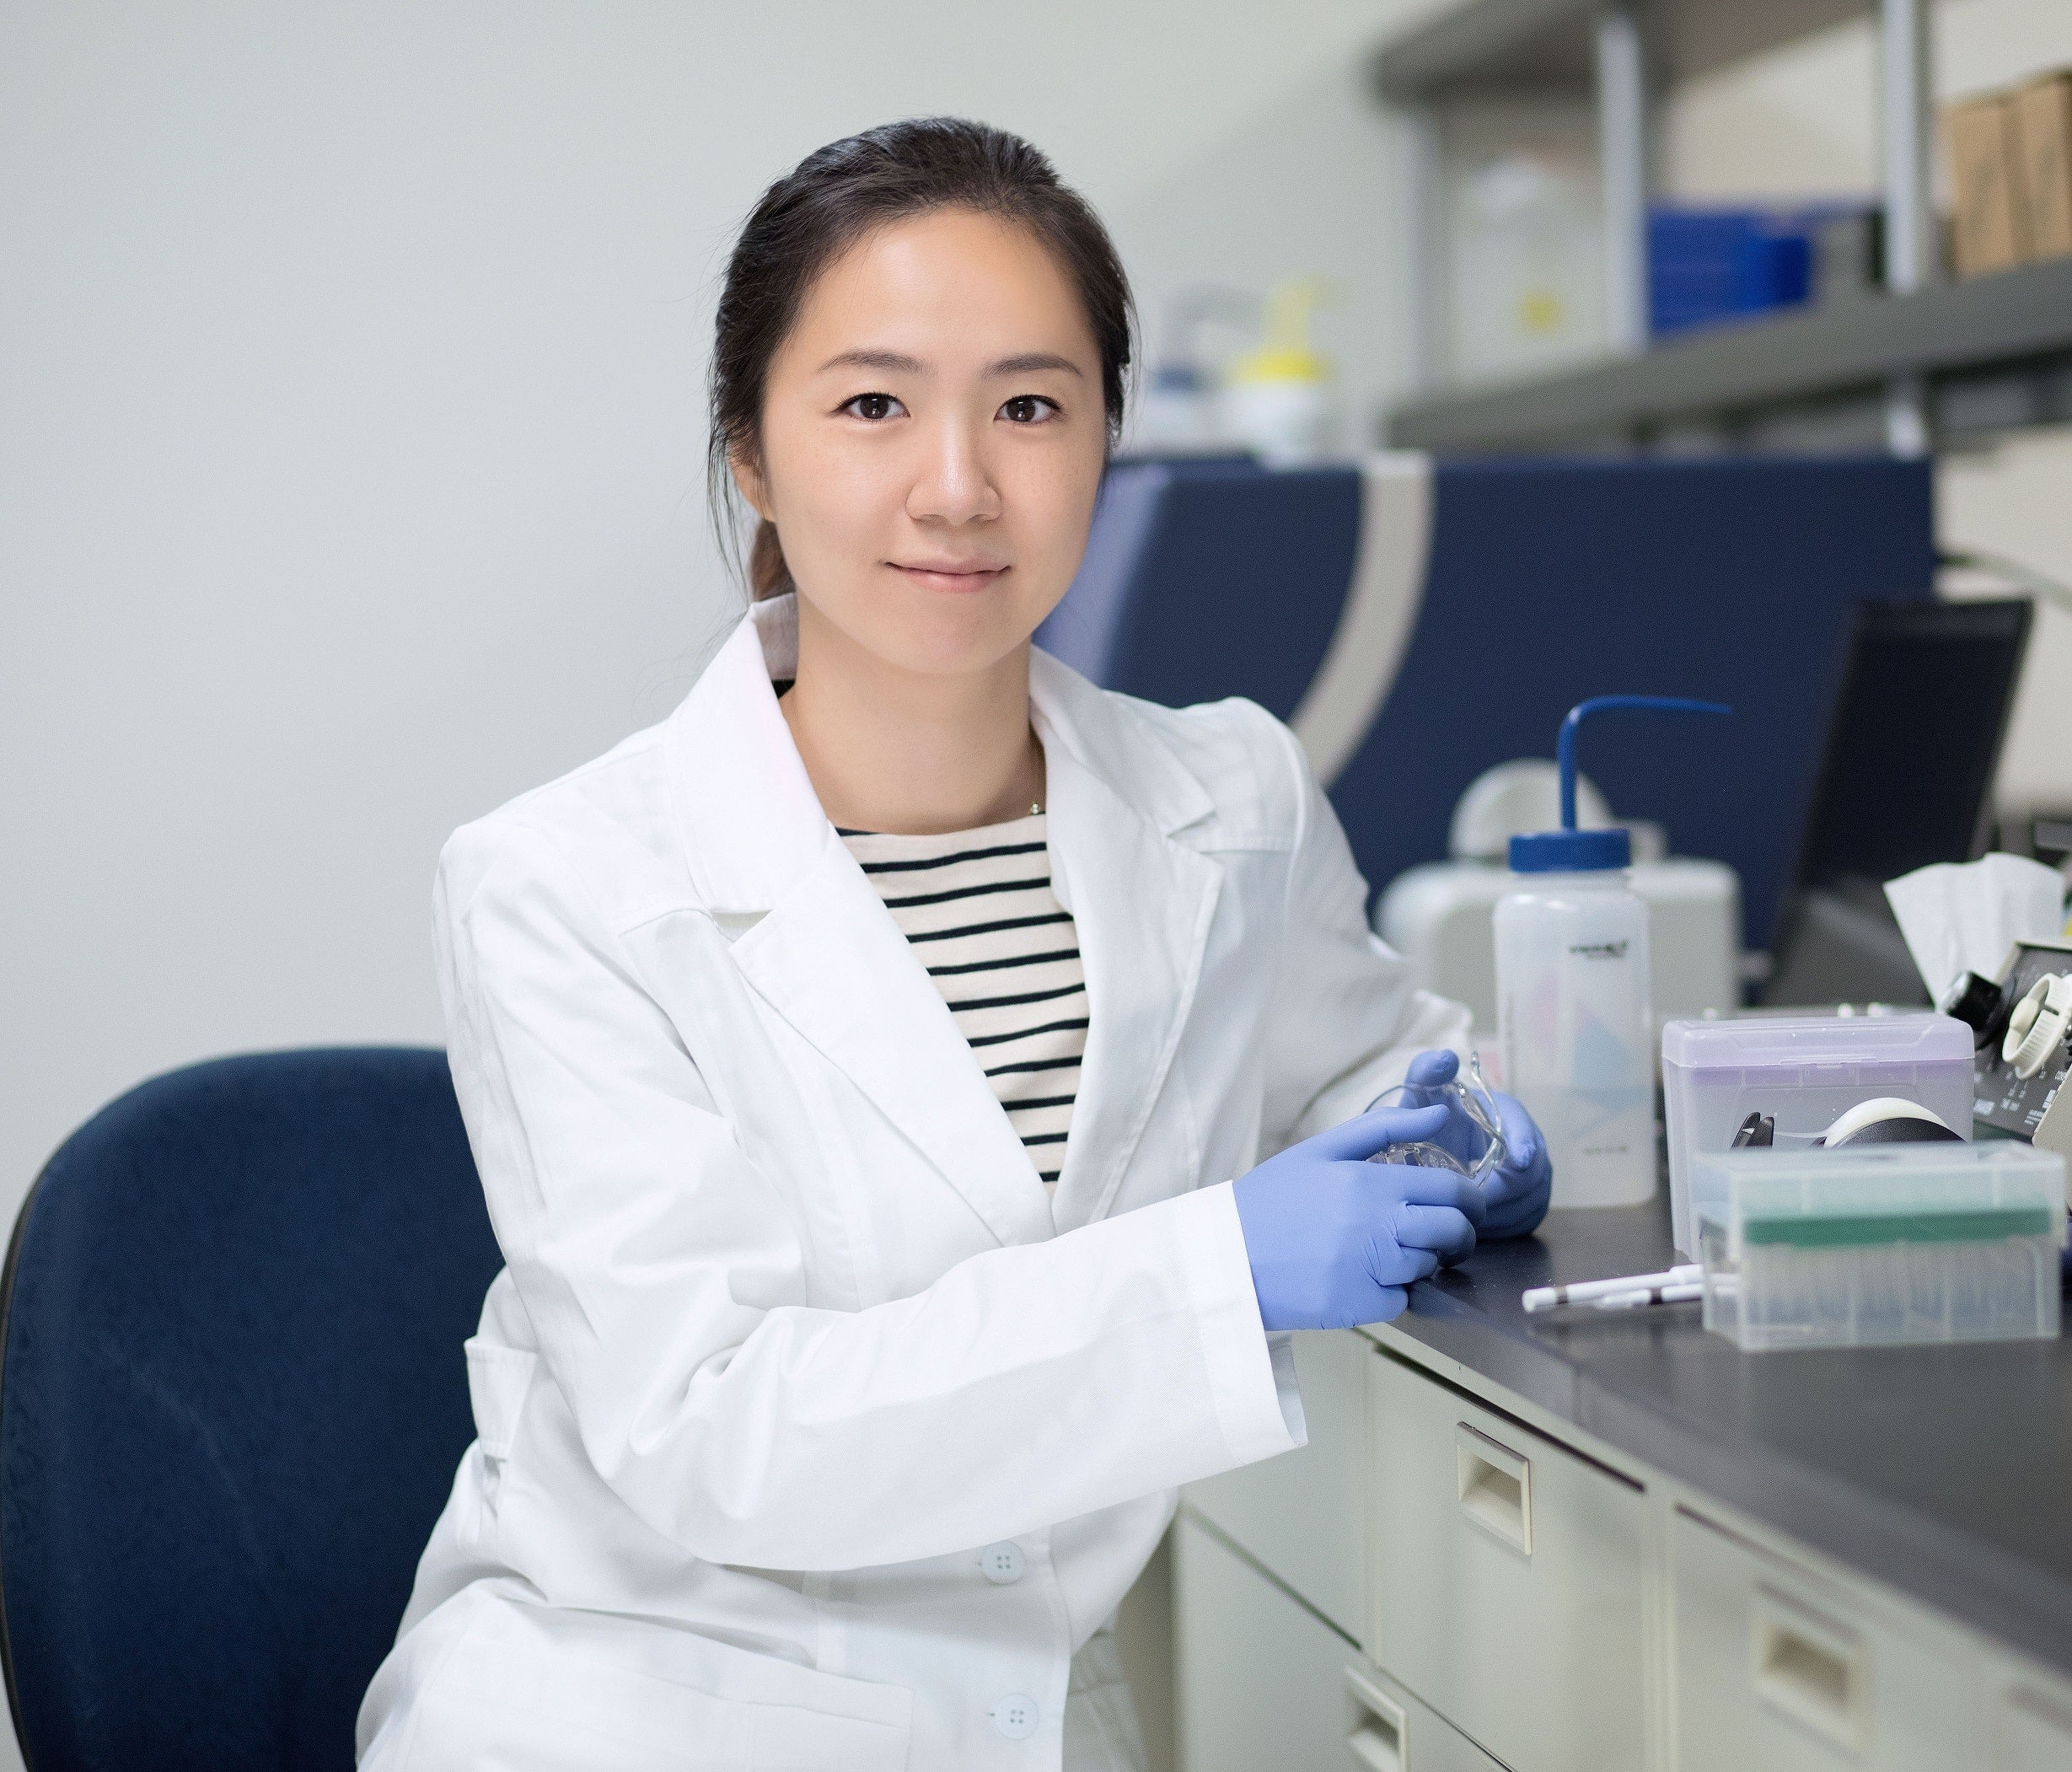 Dr Chenyue Xing